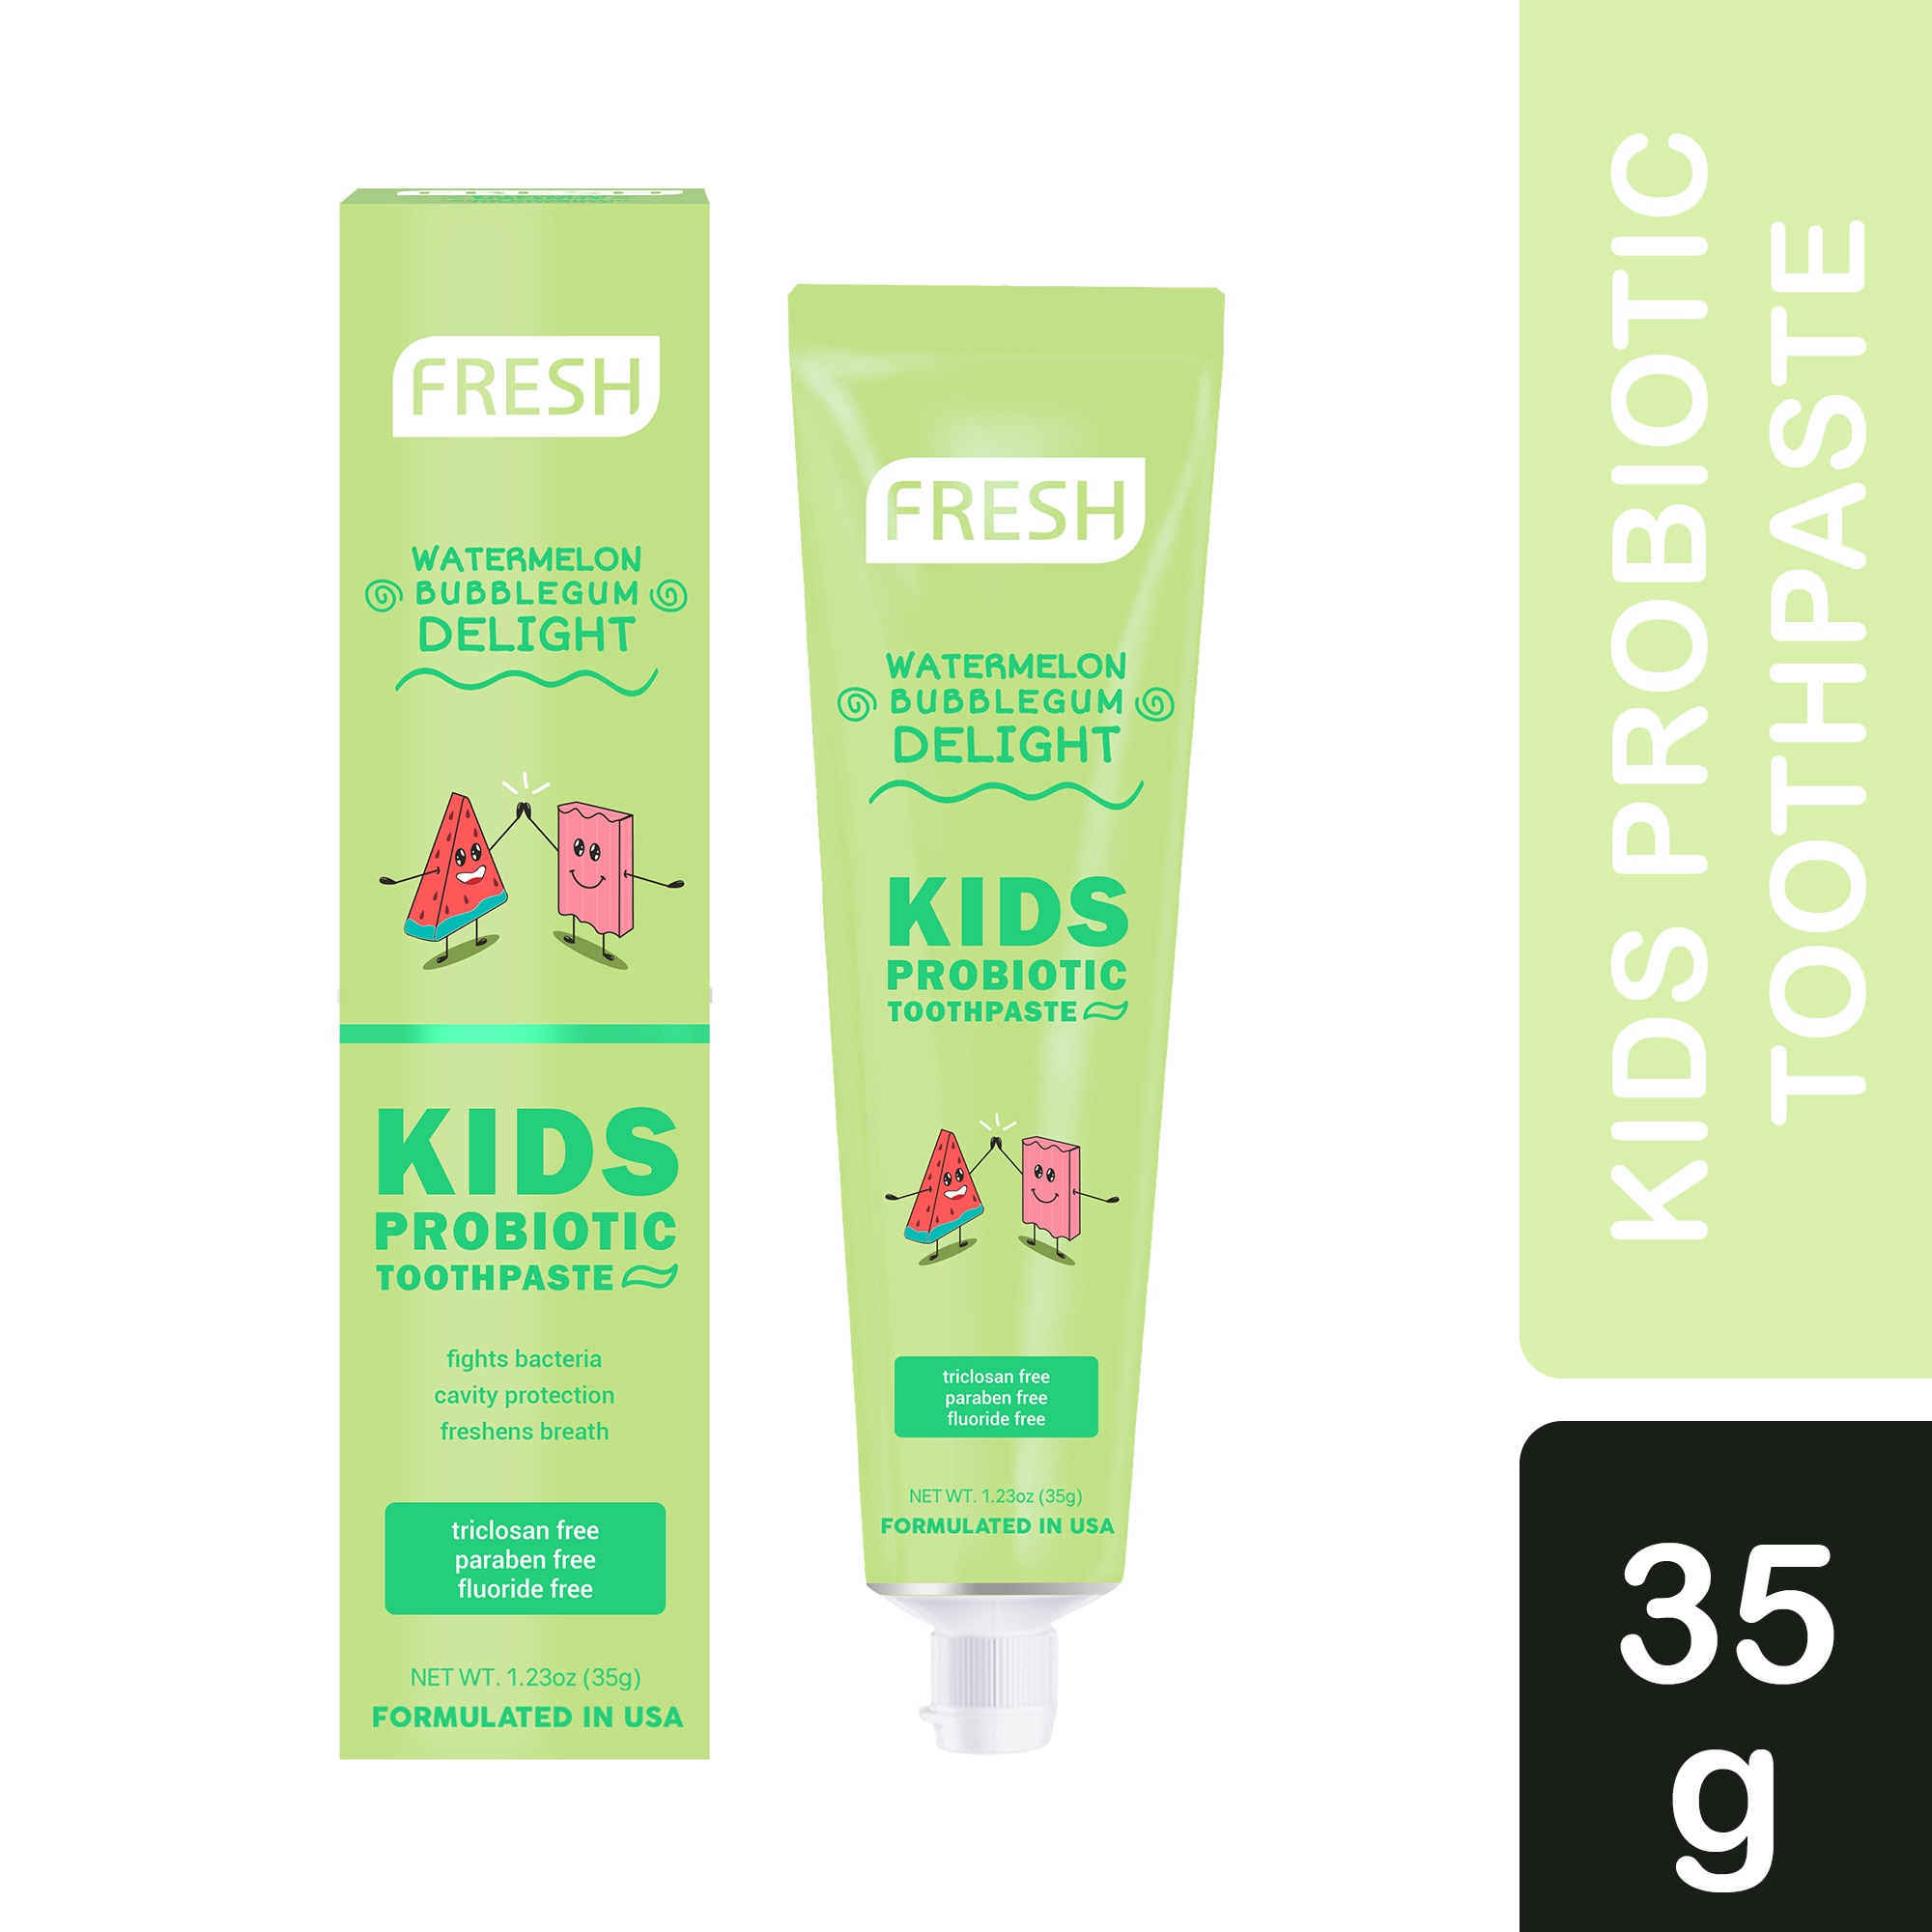 FRESHKids Probiotic Toothpaste Watermelon Bubblegum Delight 35g,Baby and Kids' Toothbrush and Toothpaste